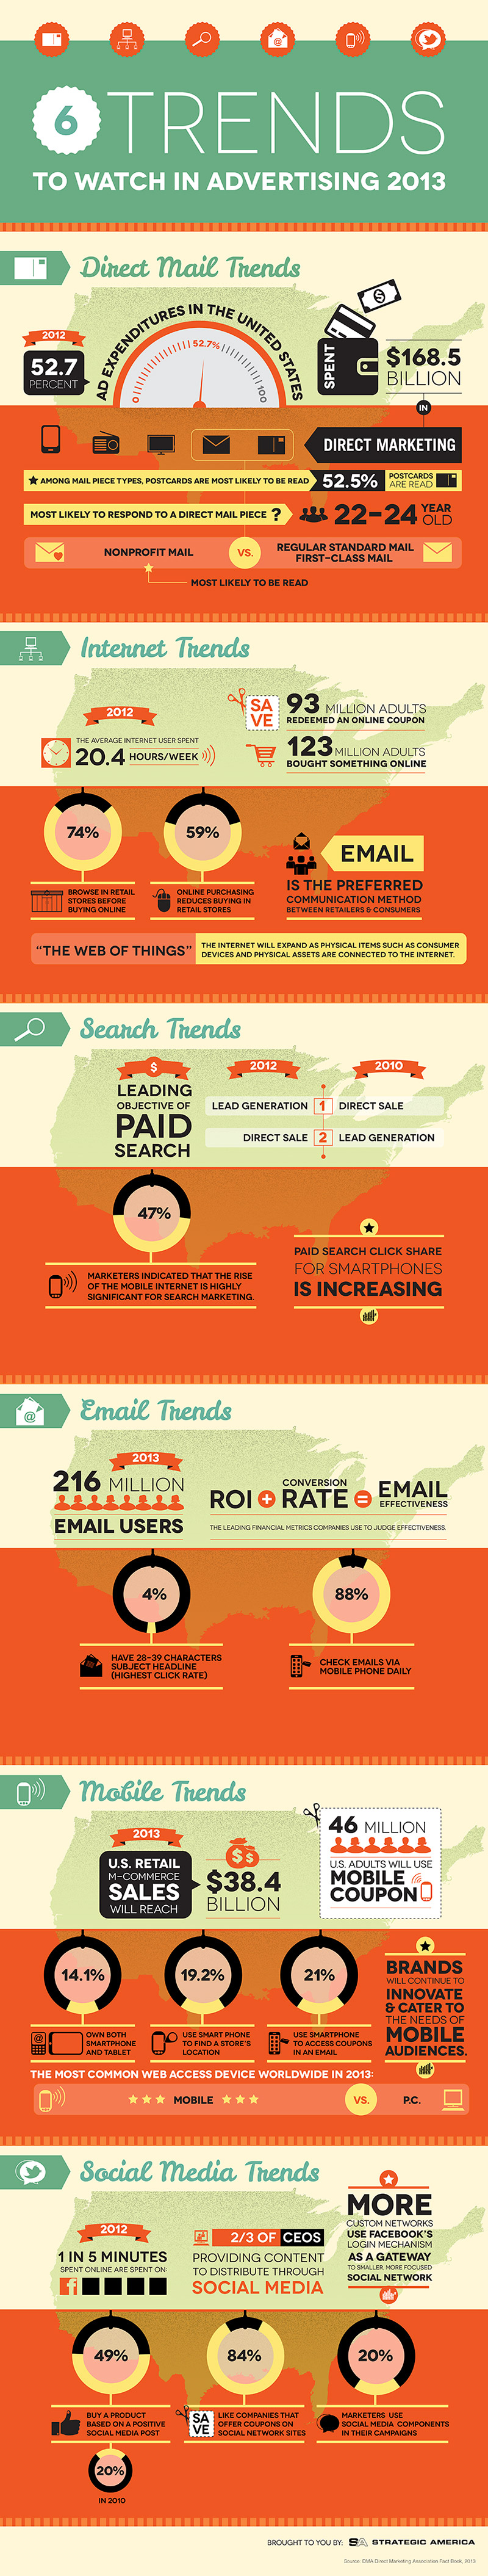 6 Trends To Watch In Advertising 2013 Infographic